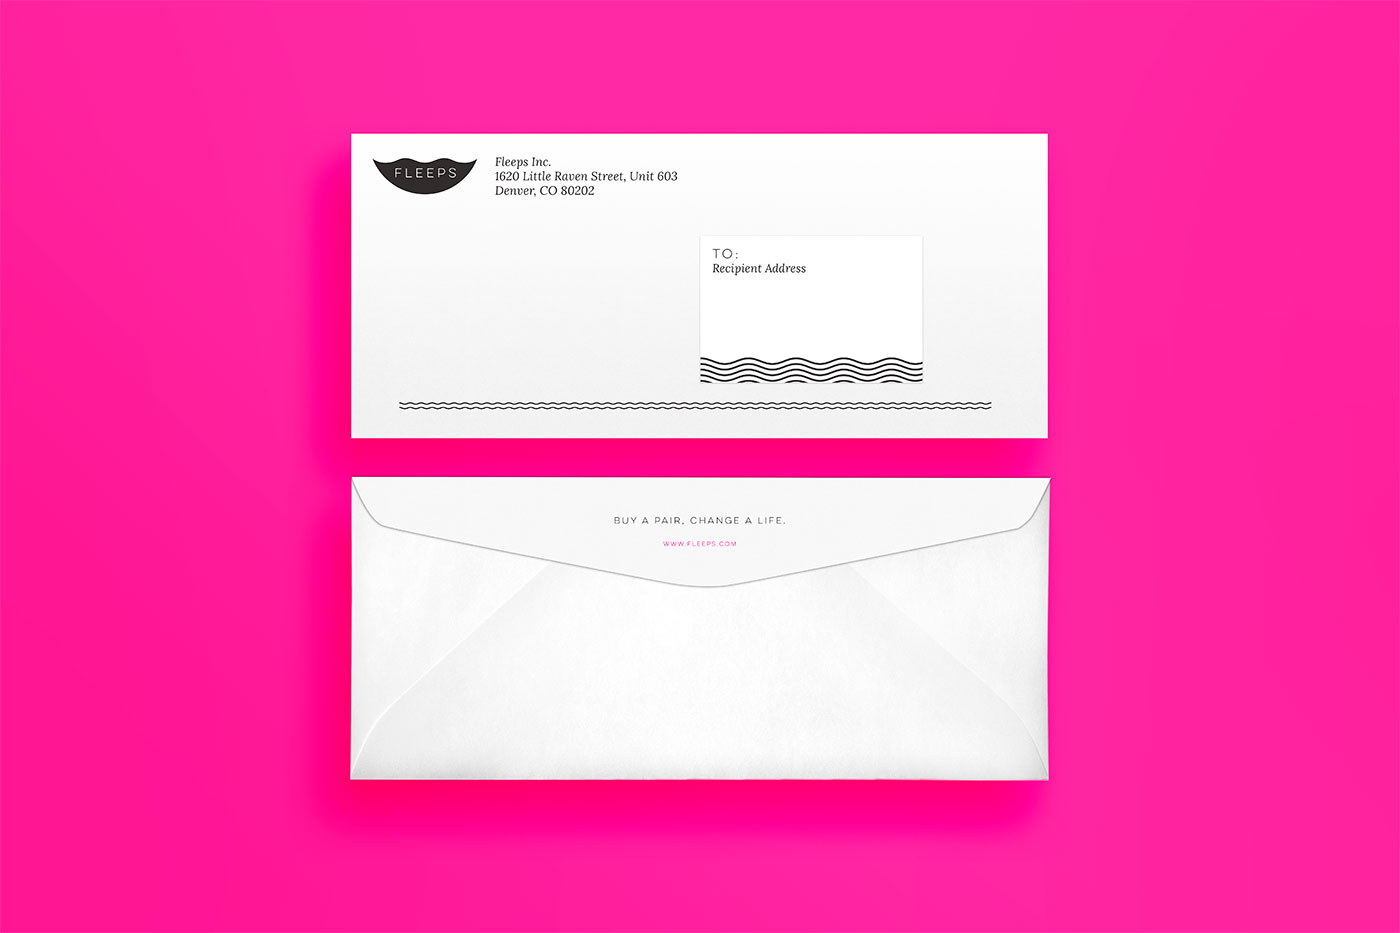 Outfit Branding & Design Fleeps Envelopes